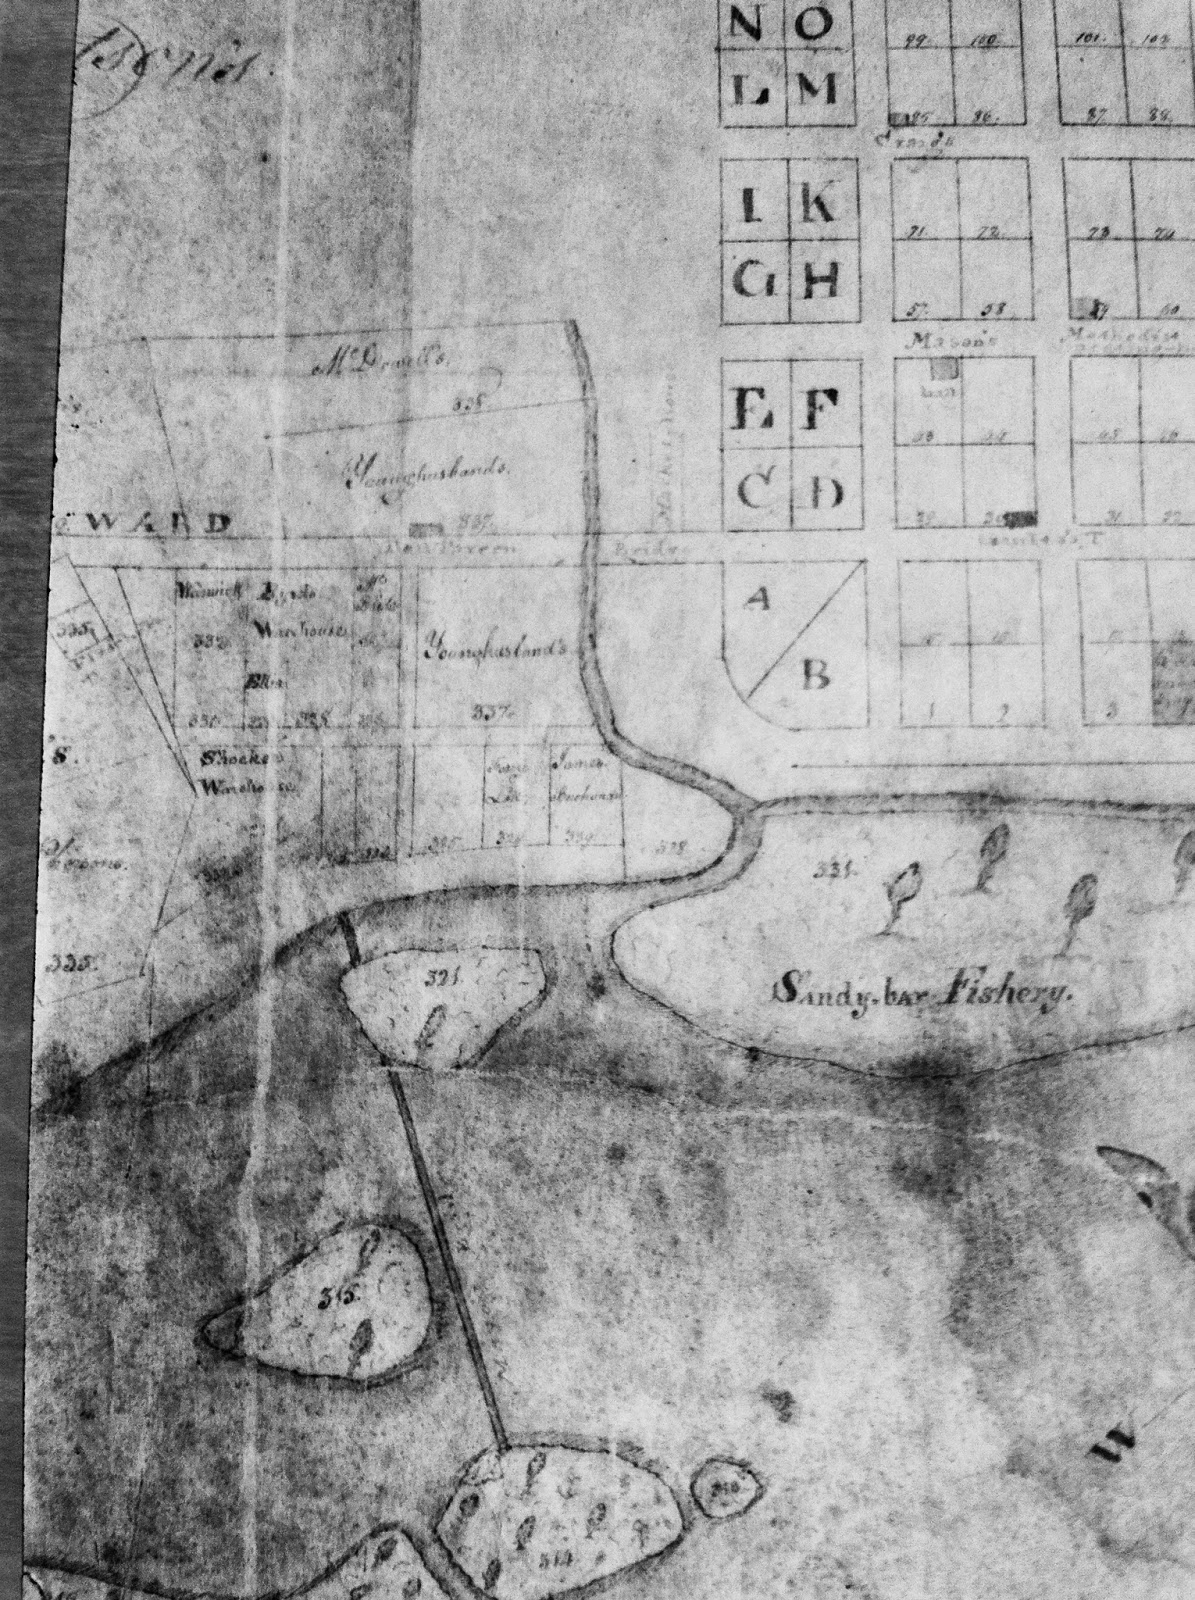 Detail of the 1804 James Map of